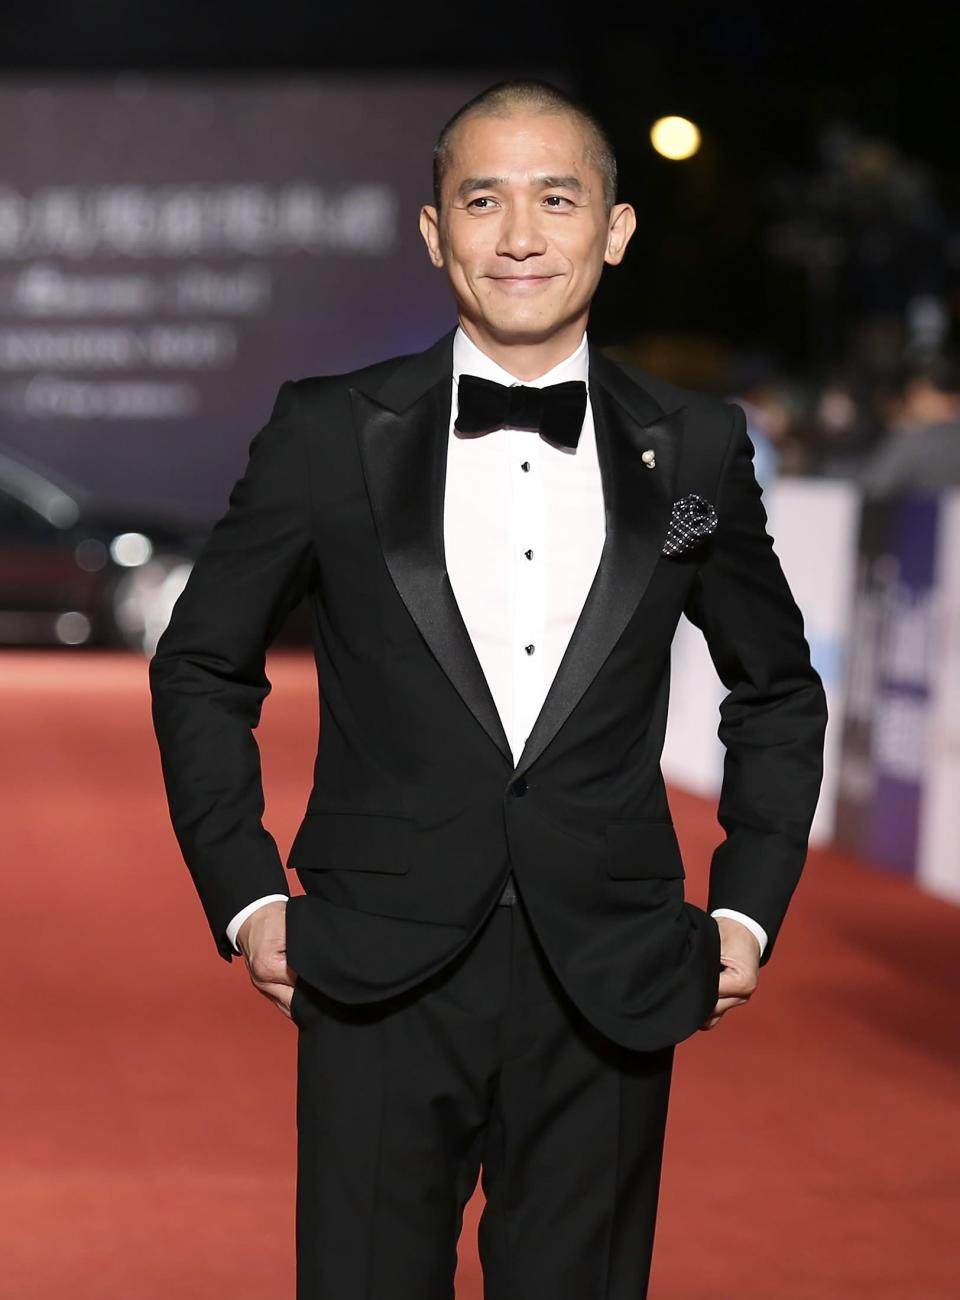 Hong Kong actor Tony Leung Chiu-wai poses for photographers on the red carpet at the 50th Golden Horse Film Awards in Taipei November 23, 2013. REUTERS/Patrick Lin (TAIWAN - Tags: ENTERTAINMENT)